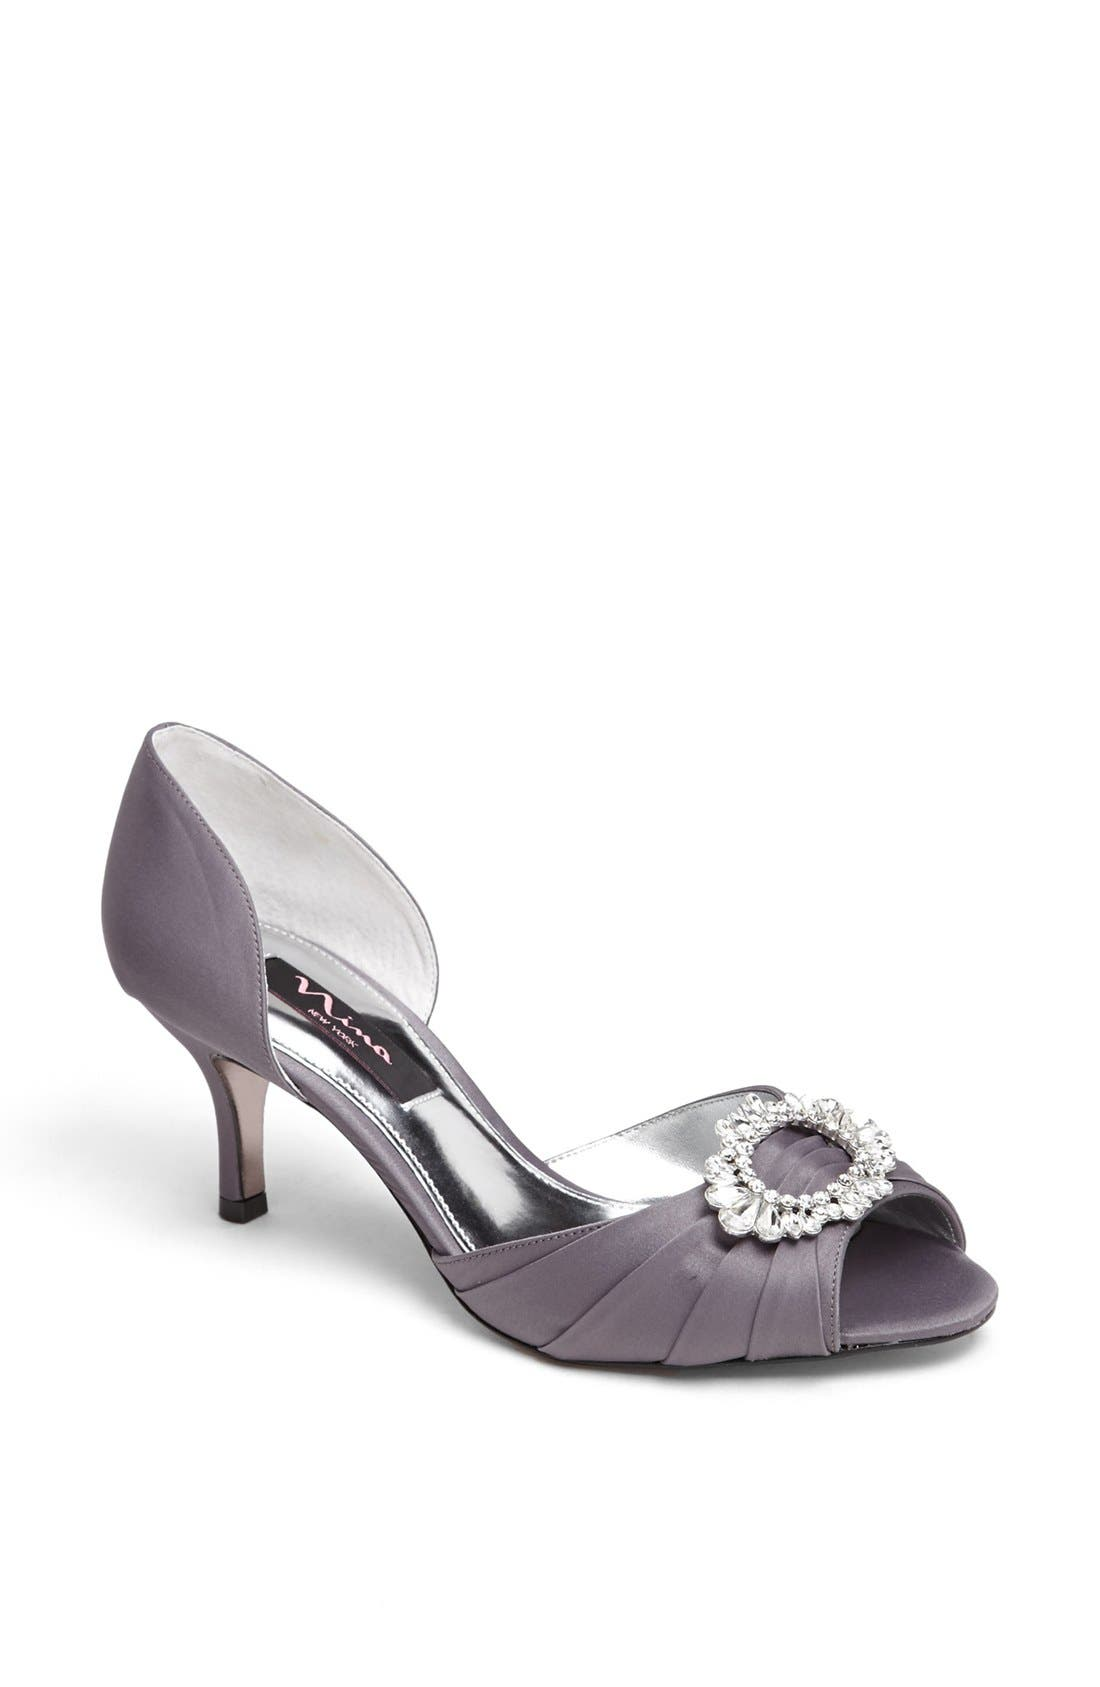 Nina 'Crystah' Embellished Satin Pump